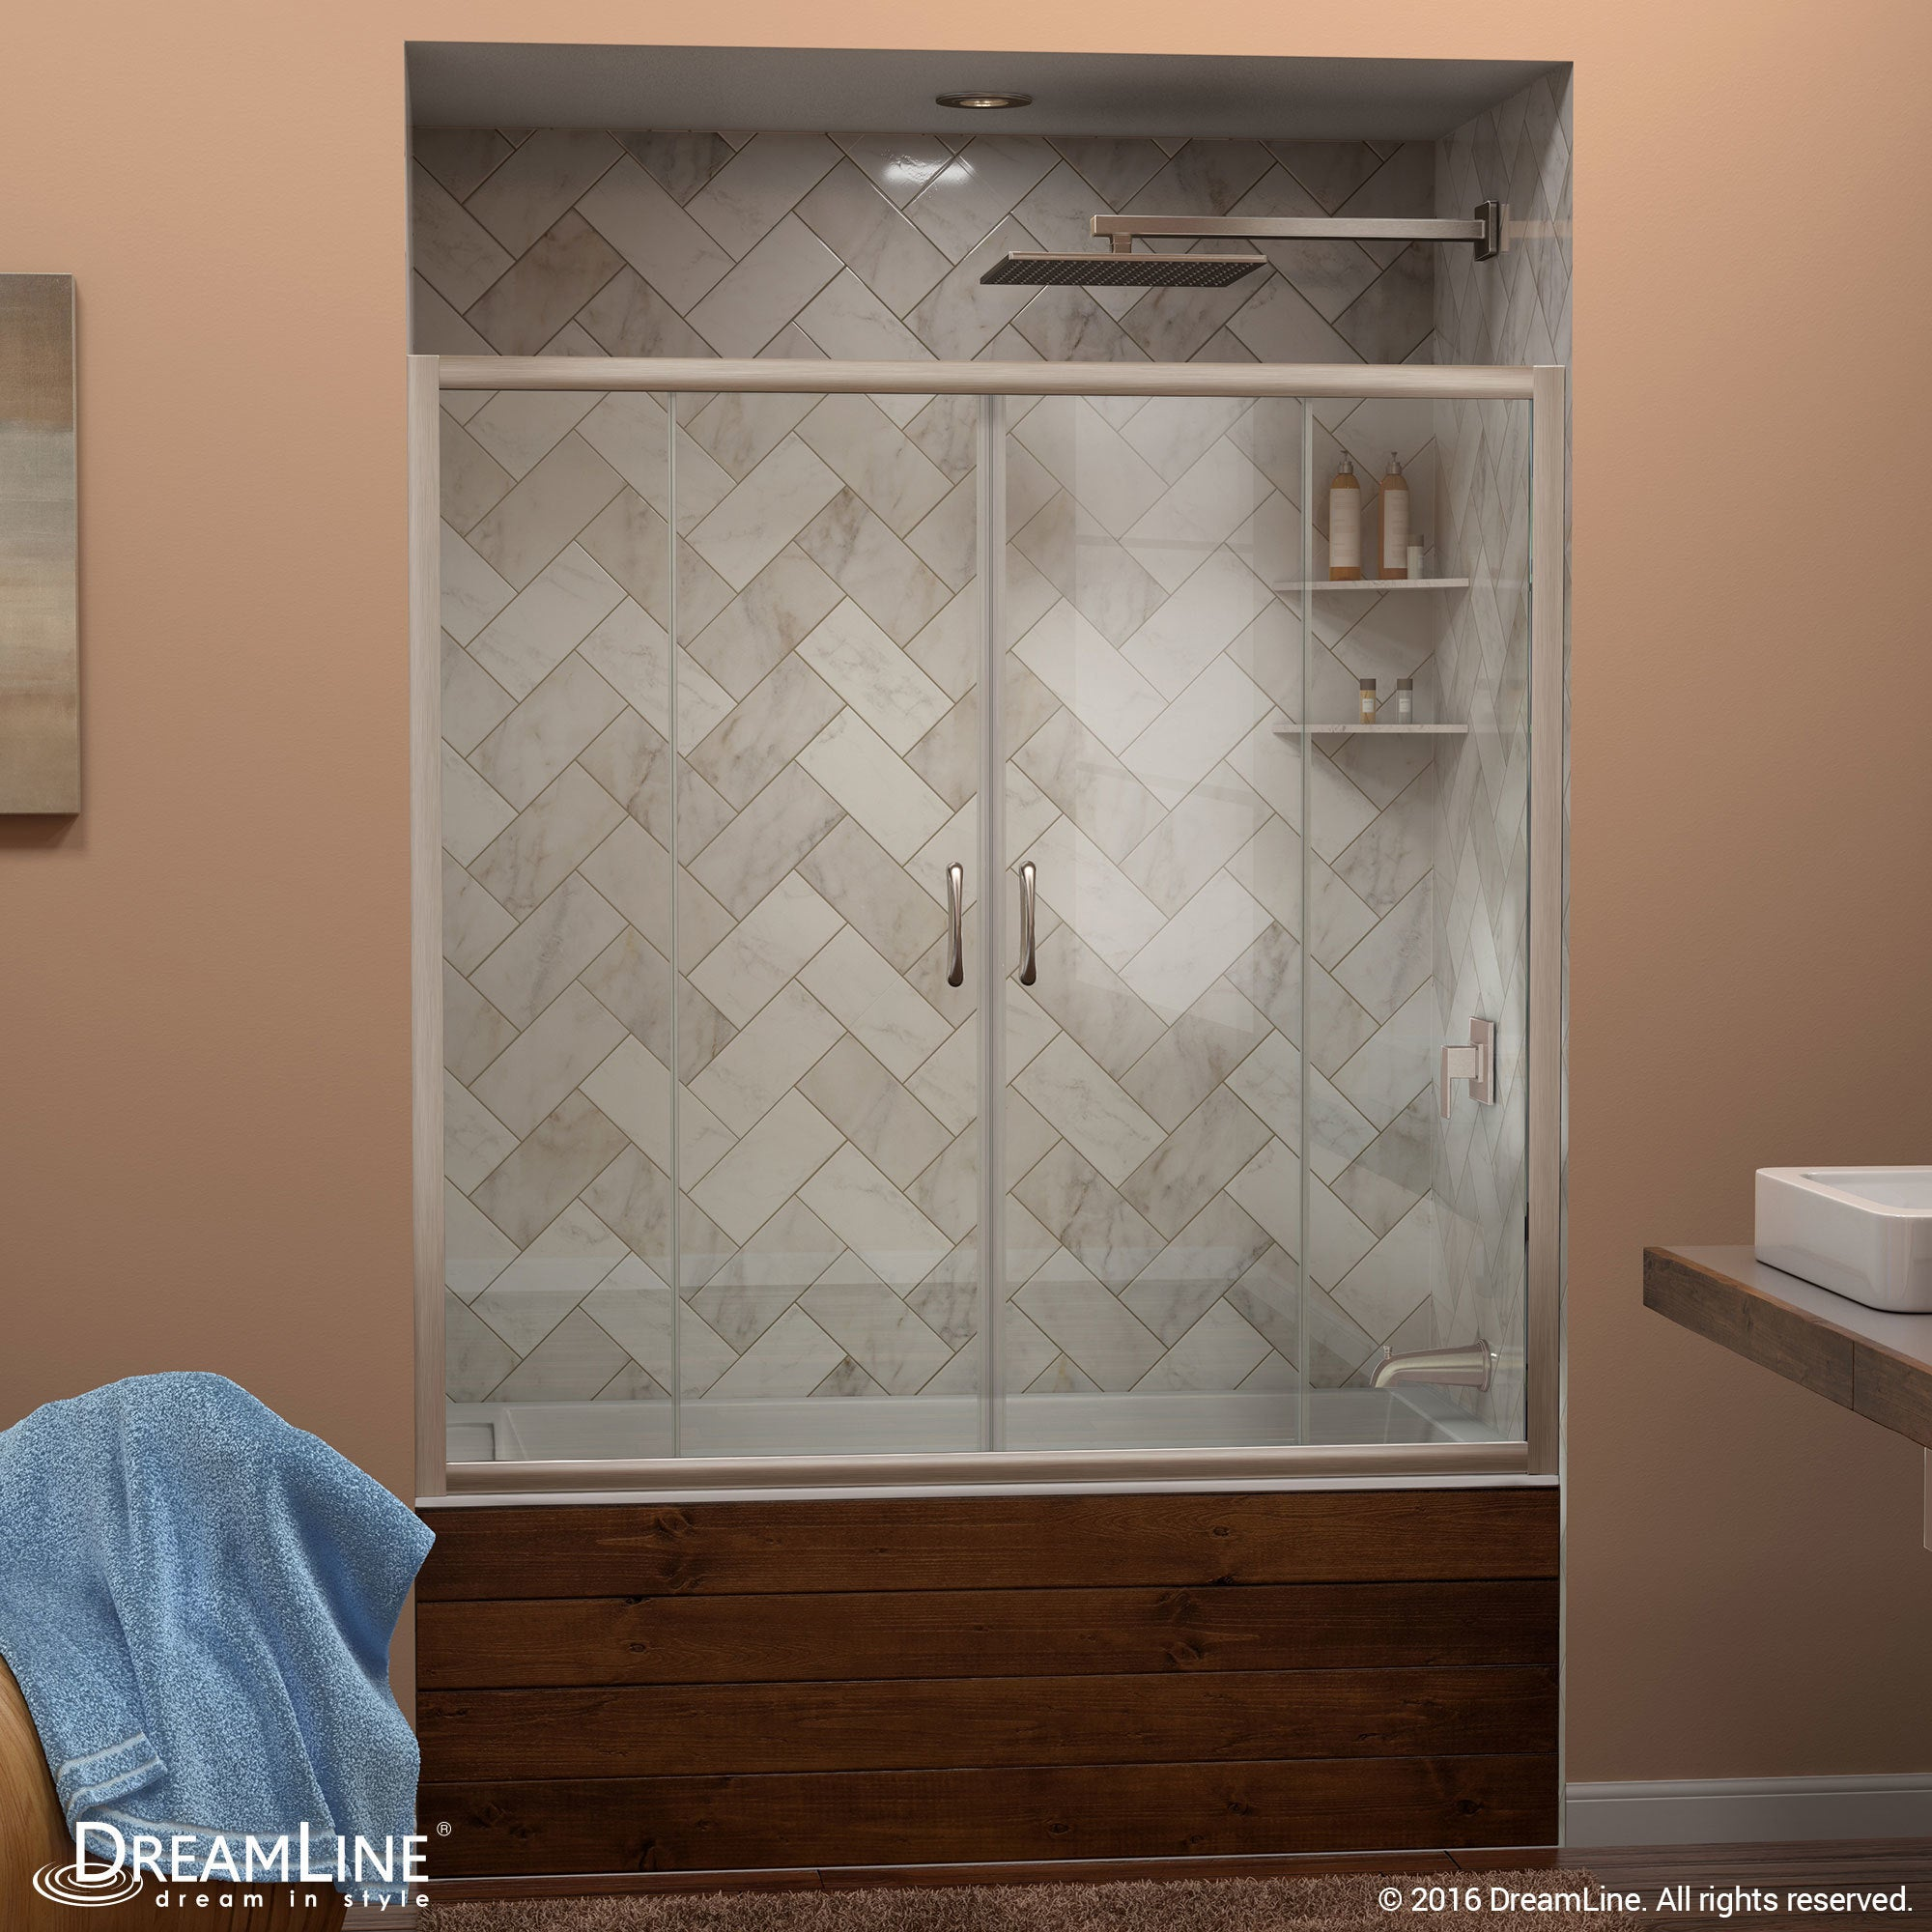 Shop Dreamline Visions 56 To 60 In Frameless Sliding Tub Door